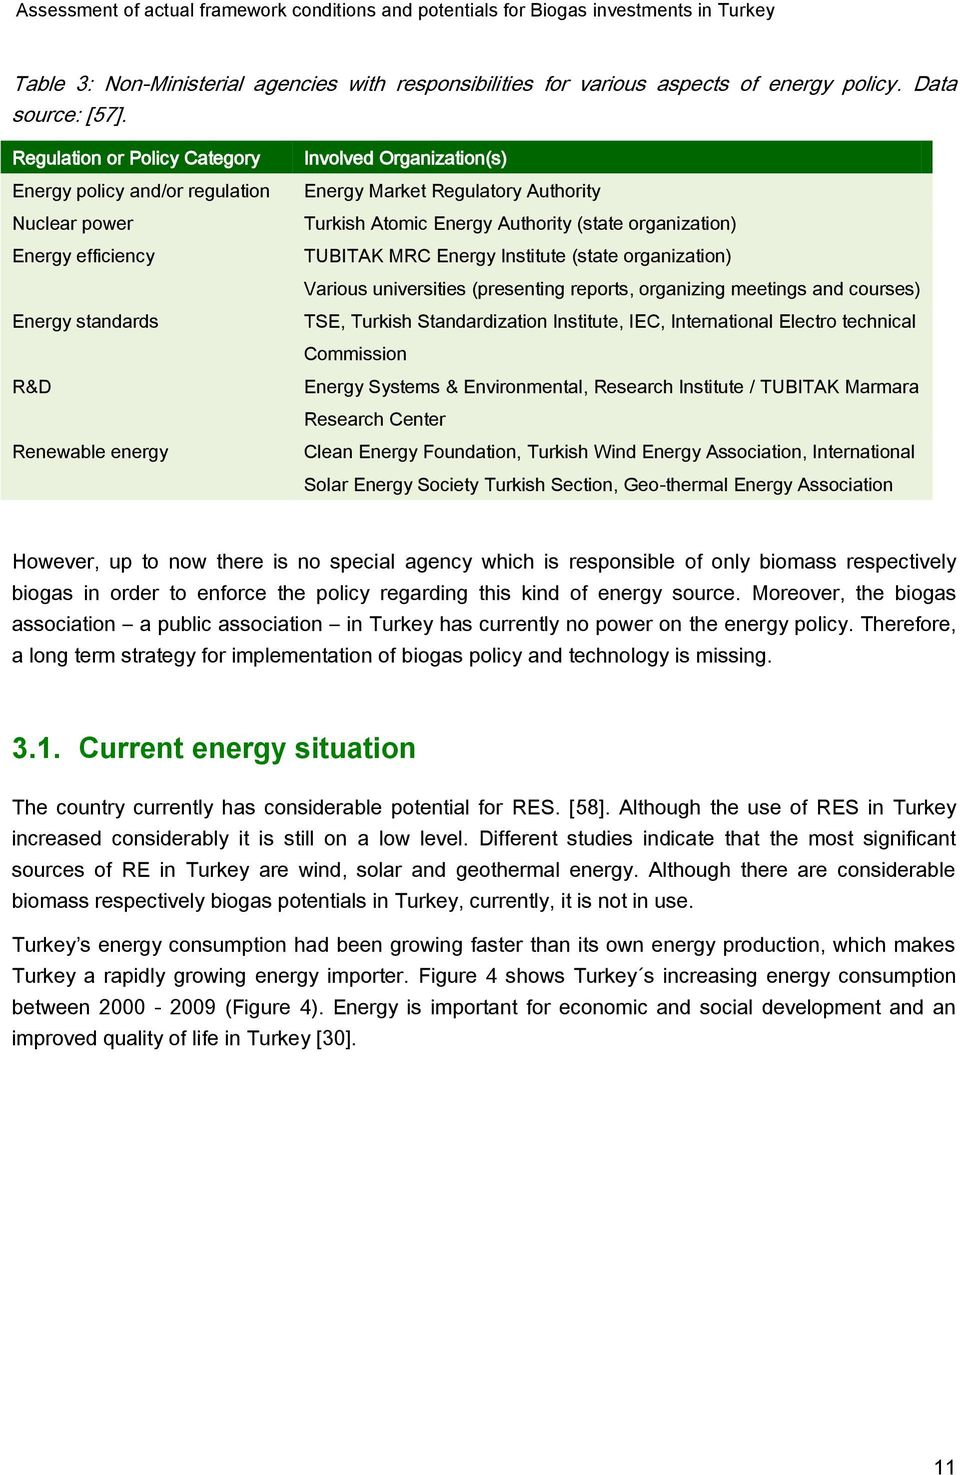 Regulation or Policy Category Energy policy and/or regulation Nuclear power Energy efficiency Energy standards R&D Renewable energy Involved Organization(s) Energy Market Regulatory Authority Turkish